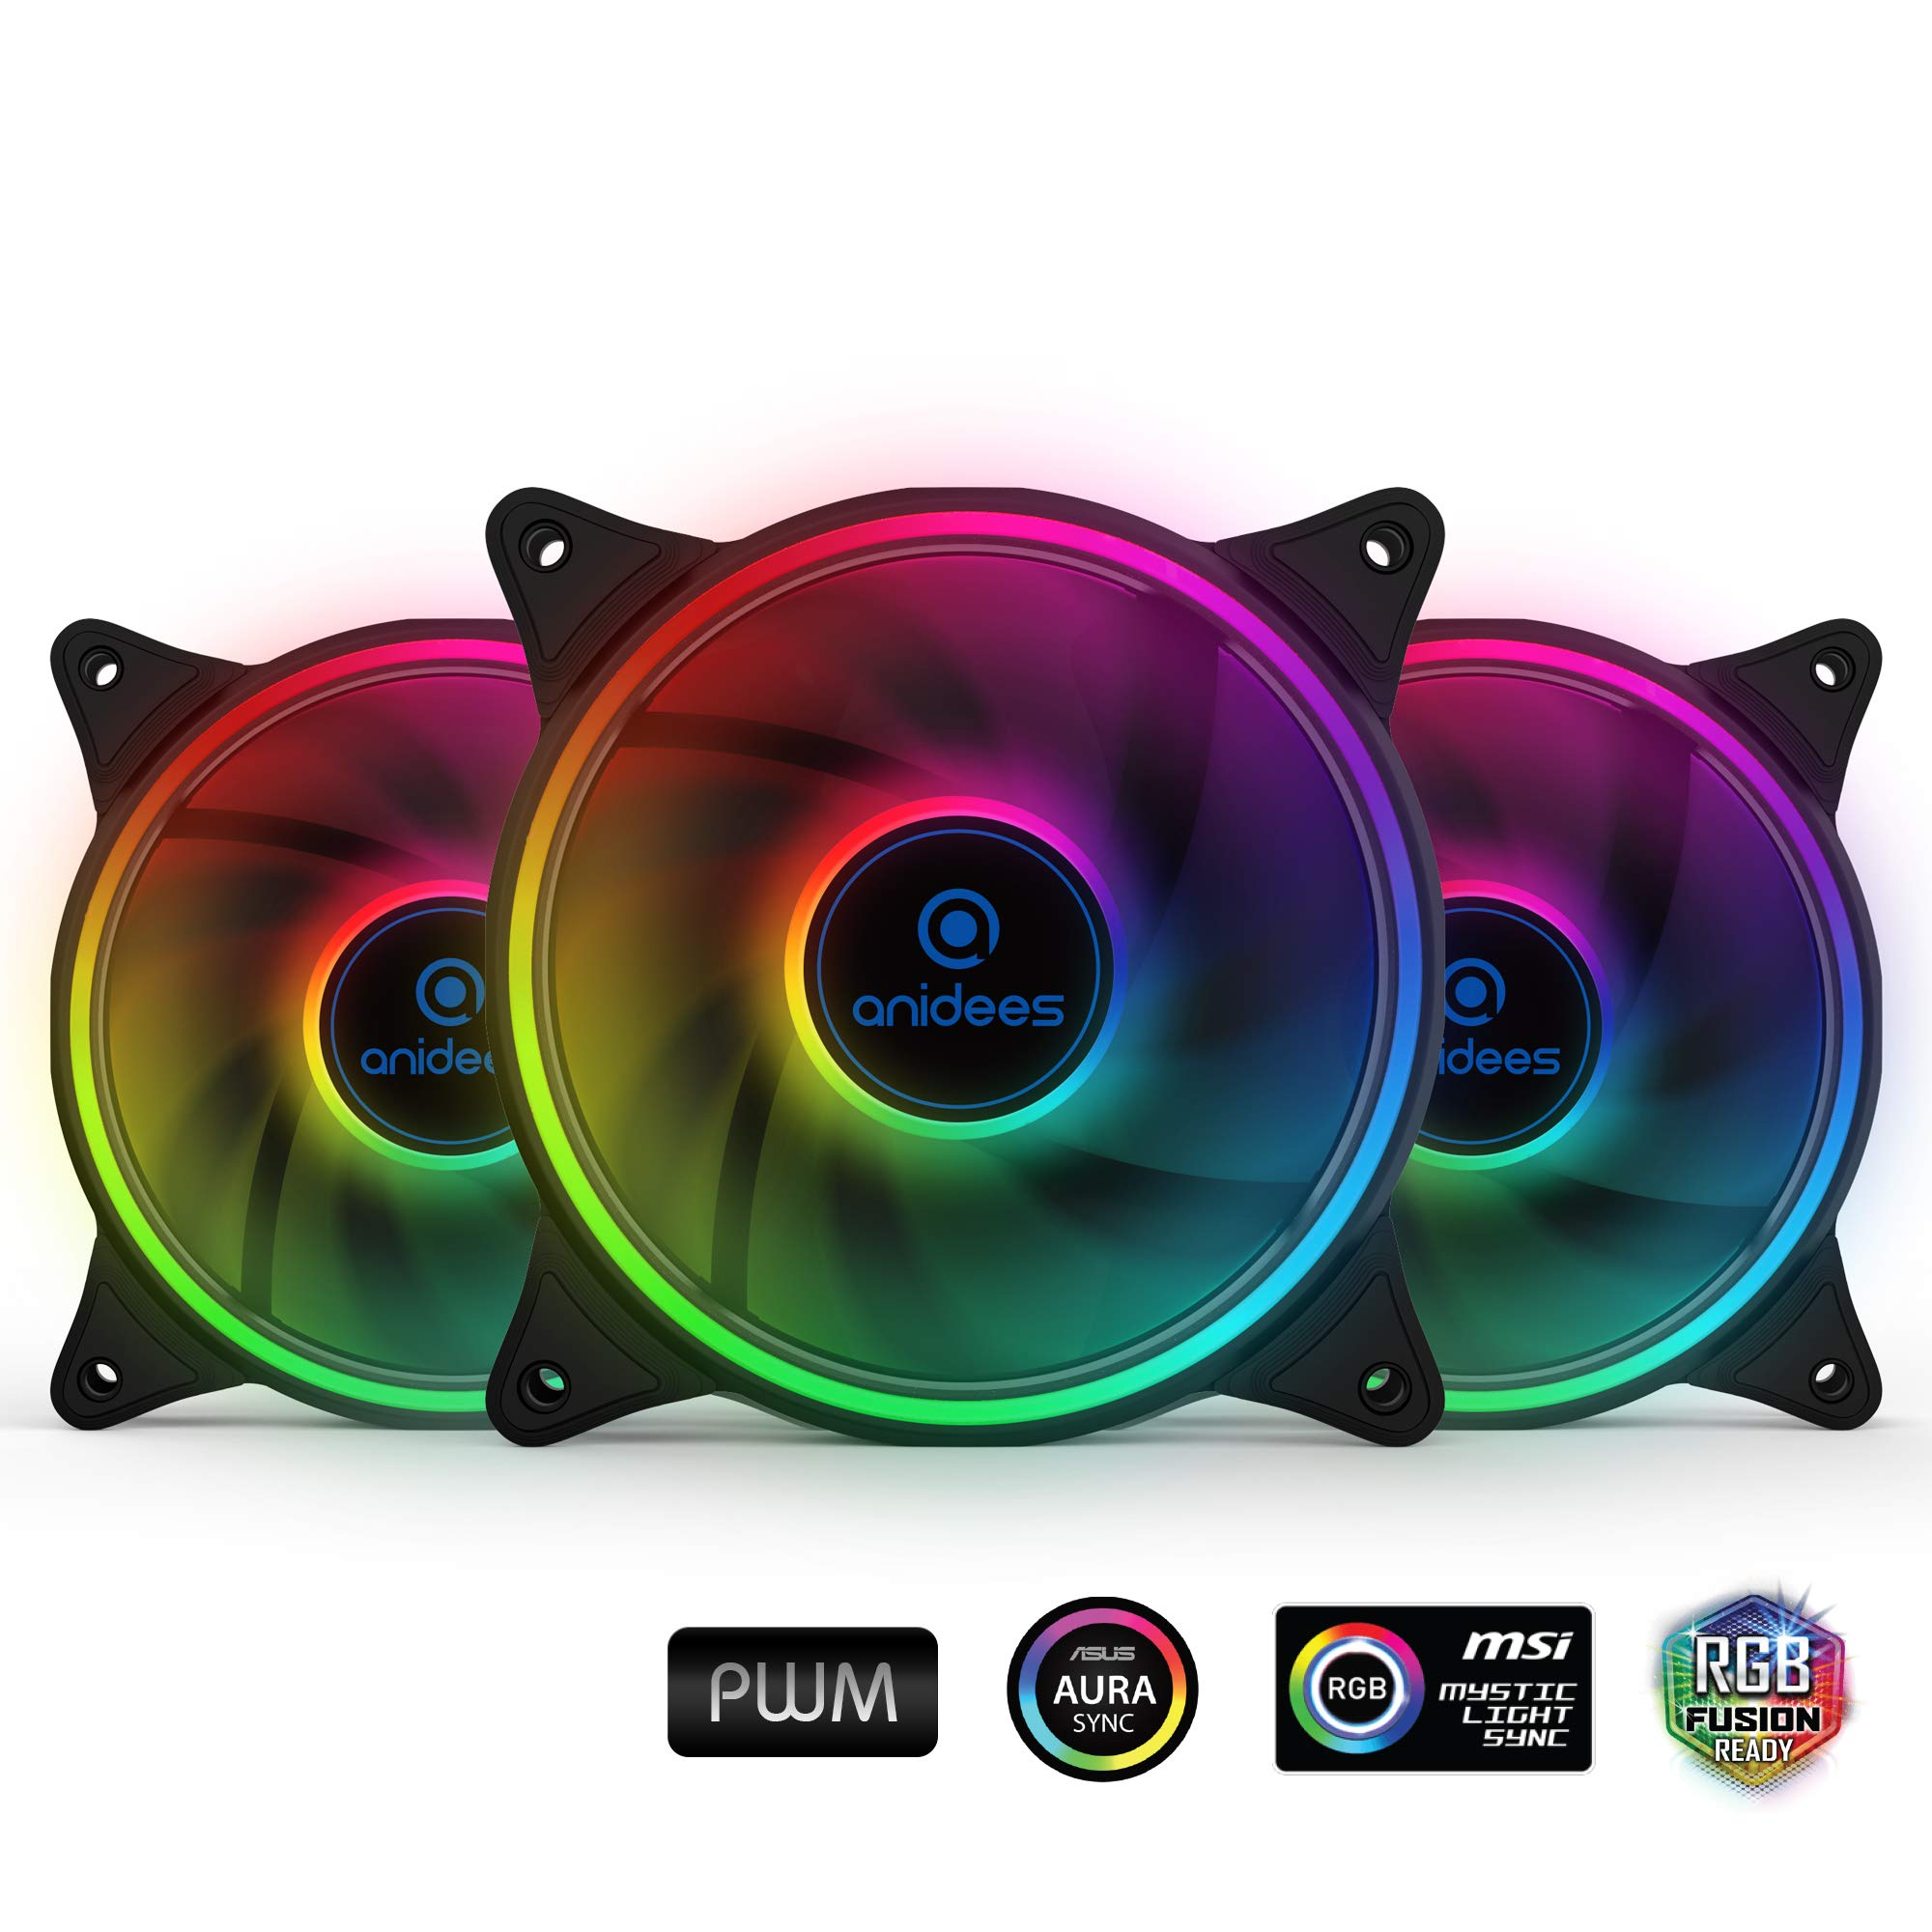 anidees AI Tesseract 120mm 3pcs RGB PWM Fan compatible with ASUS Aura SYNC/MSI Mystic Sync/GIGABYTE Fusion, controlled by 5V 3pins RGB Header on MB, for Case Fan, Cooler Fan, with Remote(AI-TESSERACT)